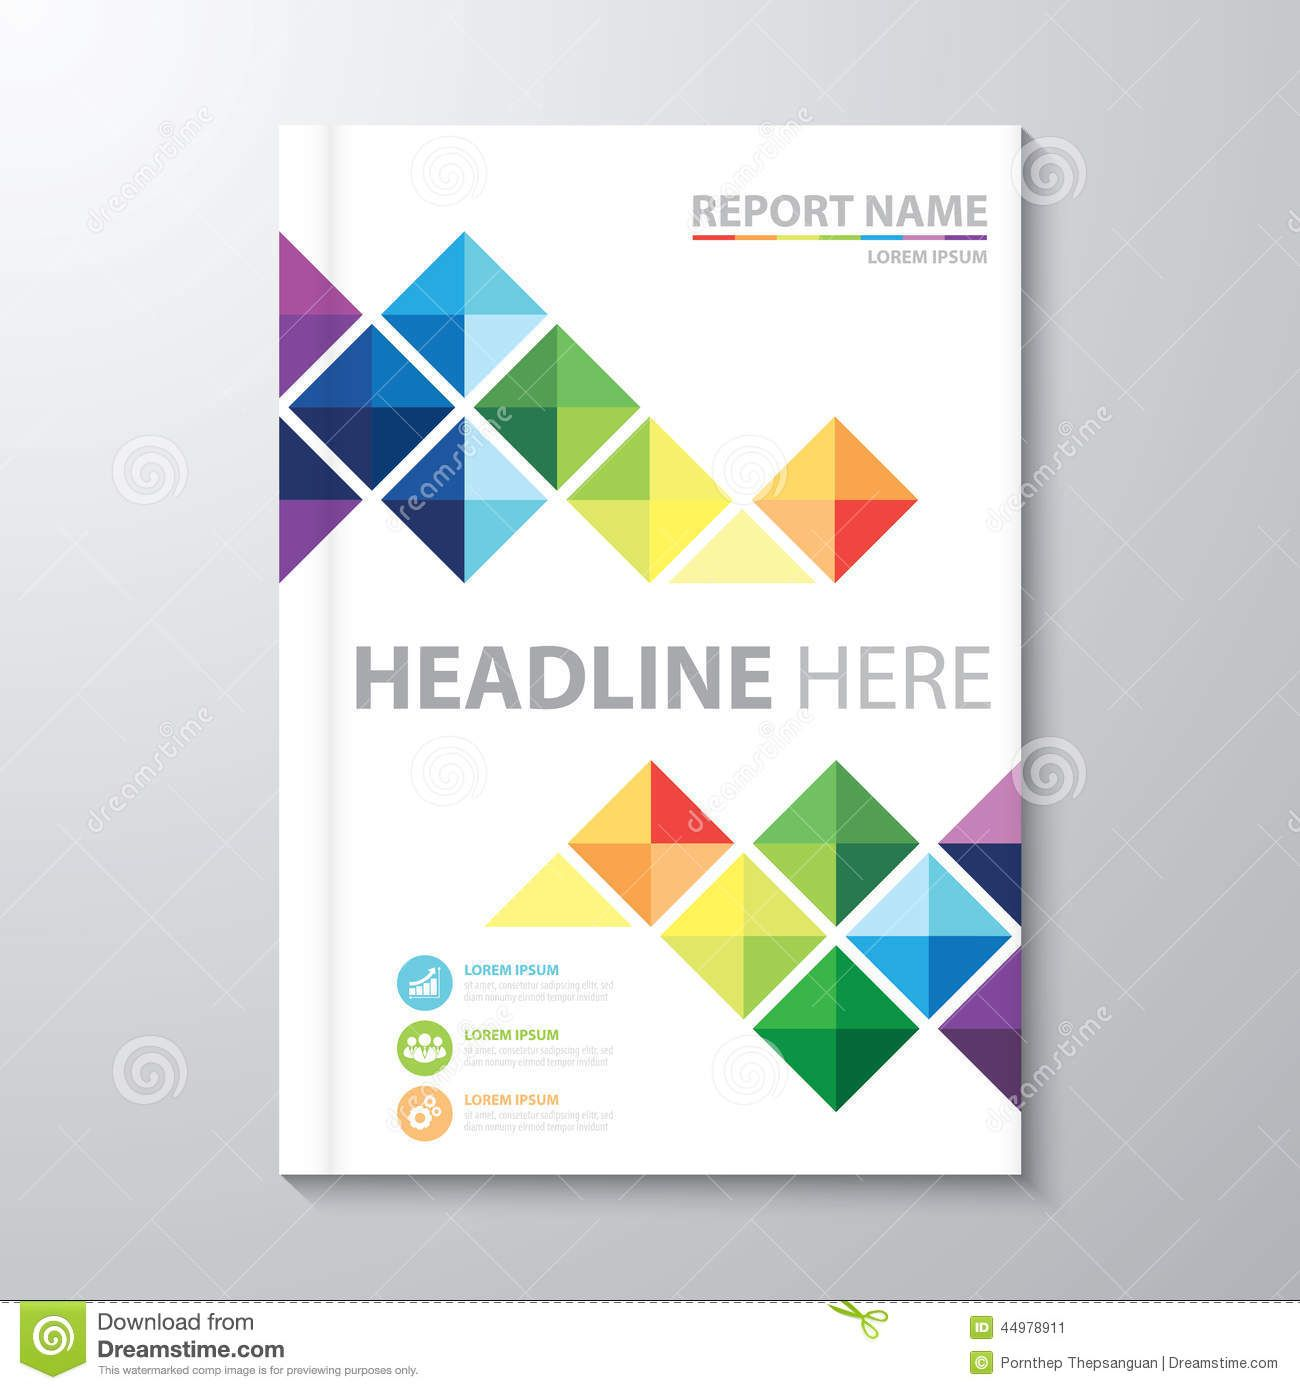 Annual Report Cover Design Template | cover | Pinterest | Annual ...